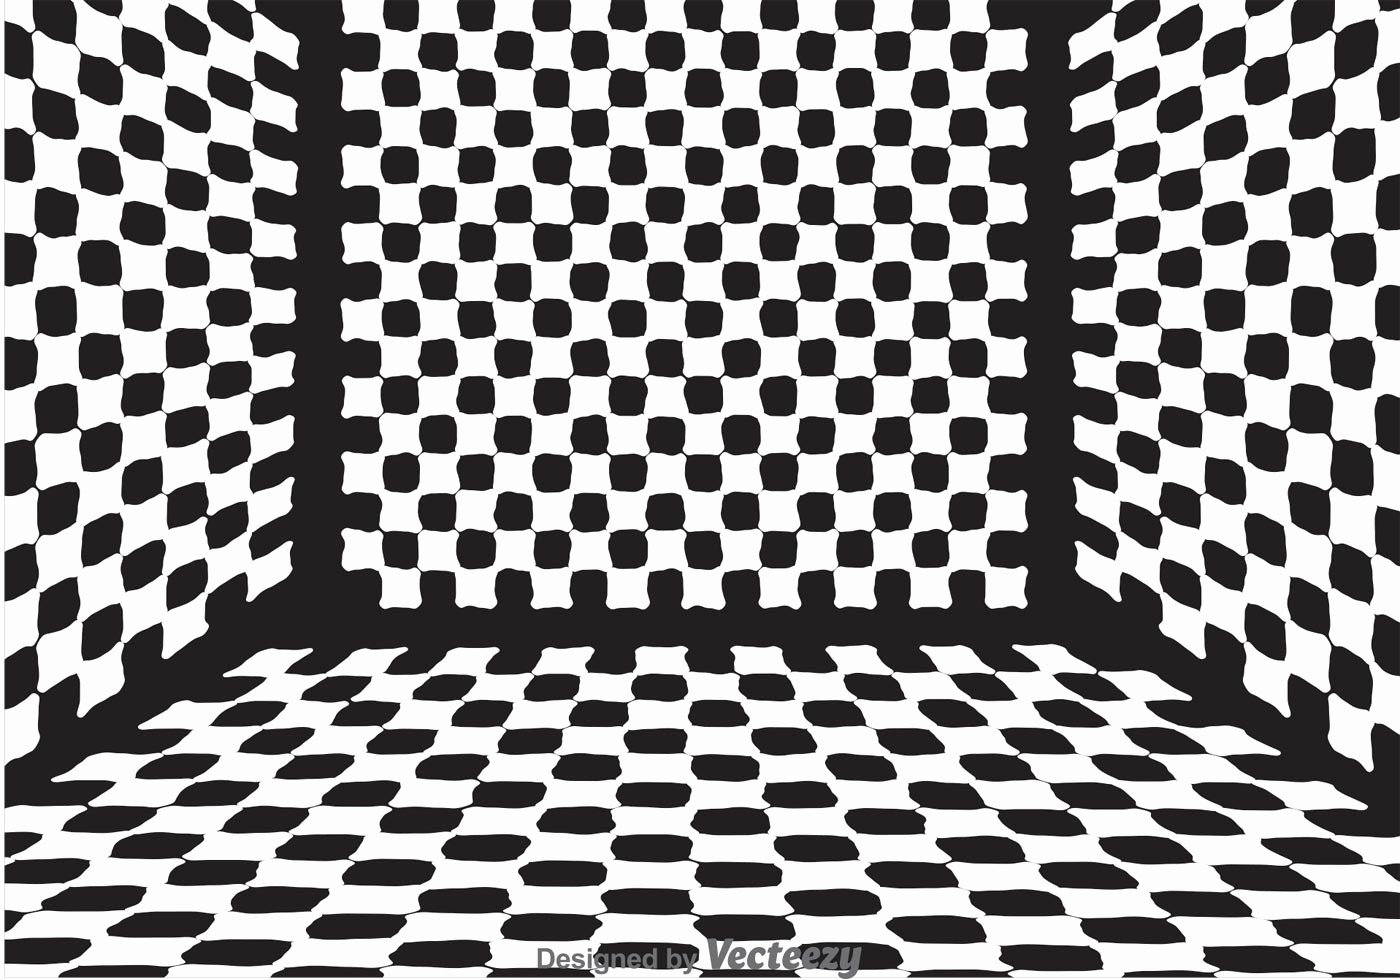 Pictures Of A Checker Board Elegant Vector Checker Board Room Download Free Vector Art